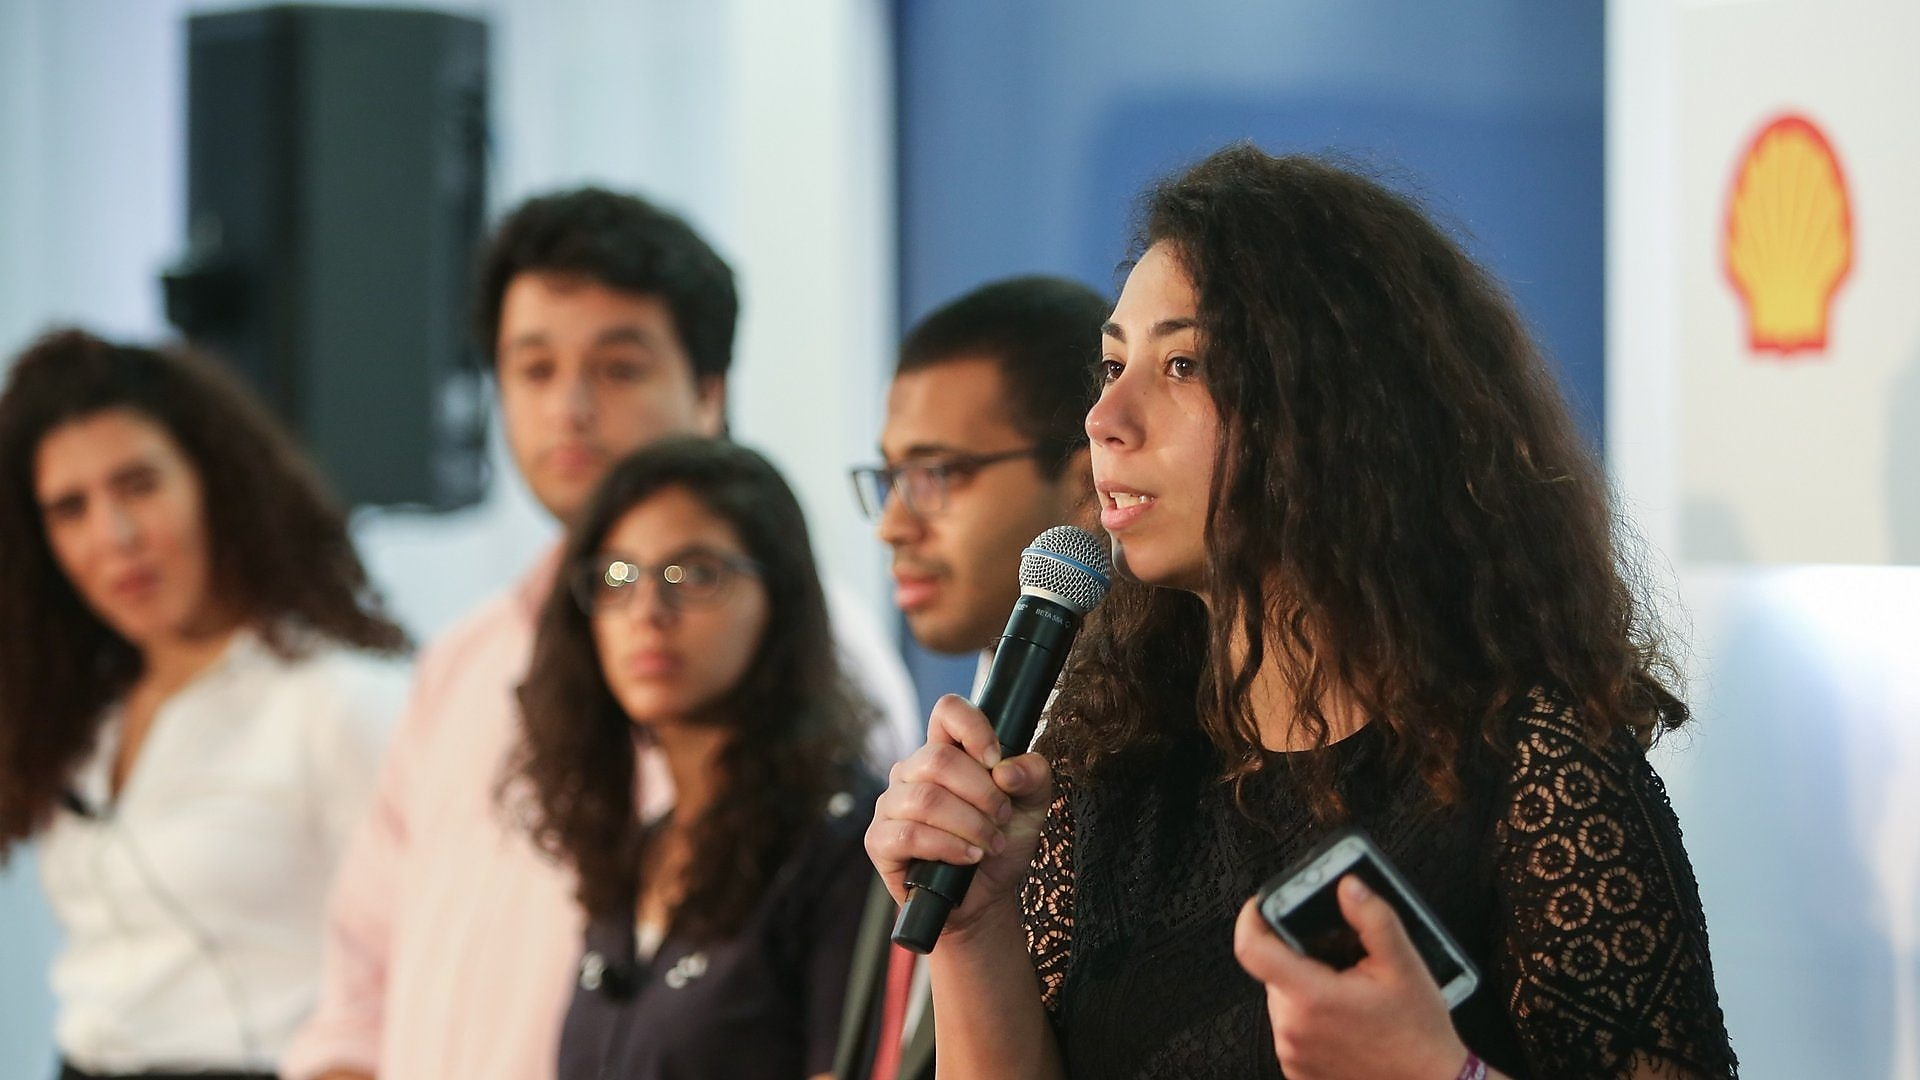 College students tell about the vision of future energy prospects